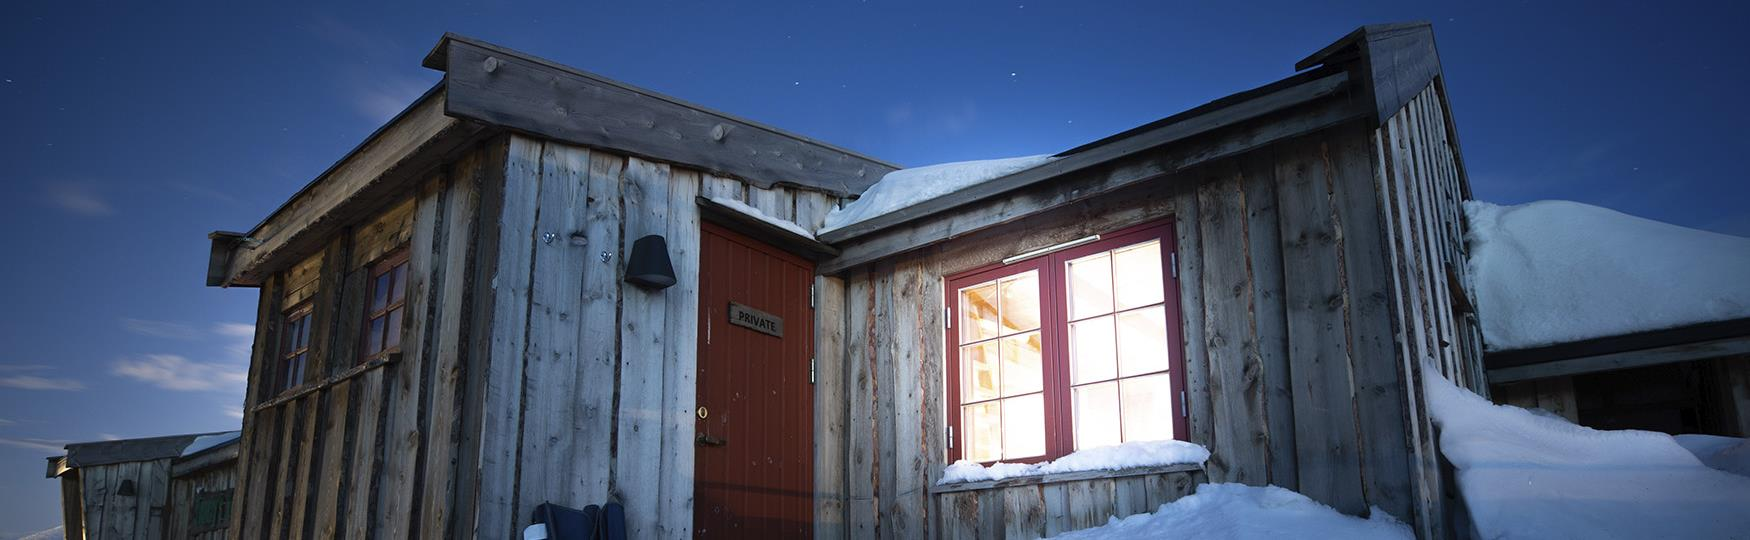 The Wilderness-cabins of Svalbard